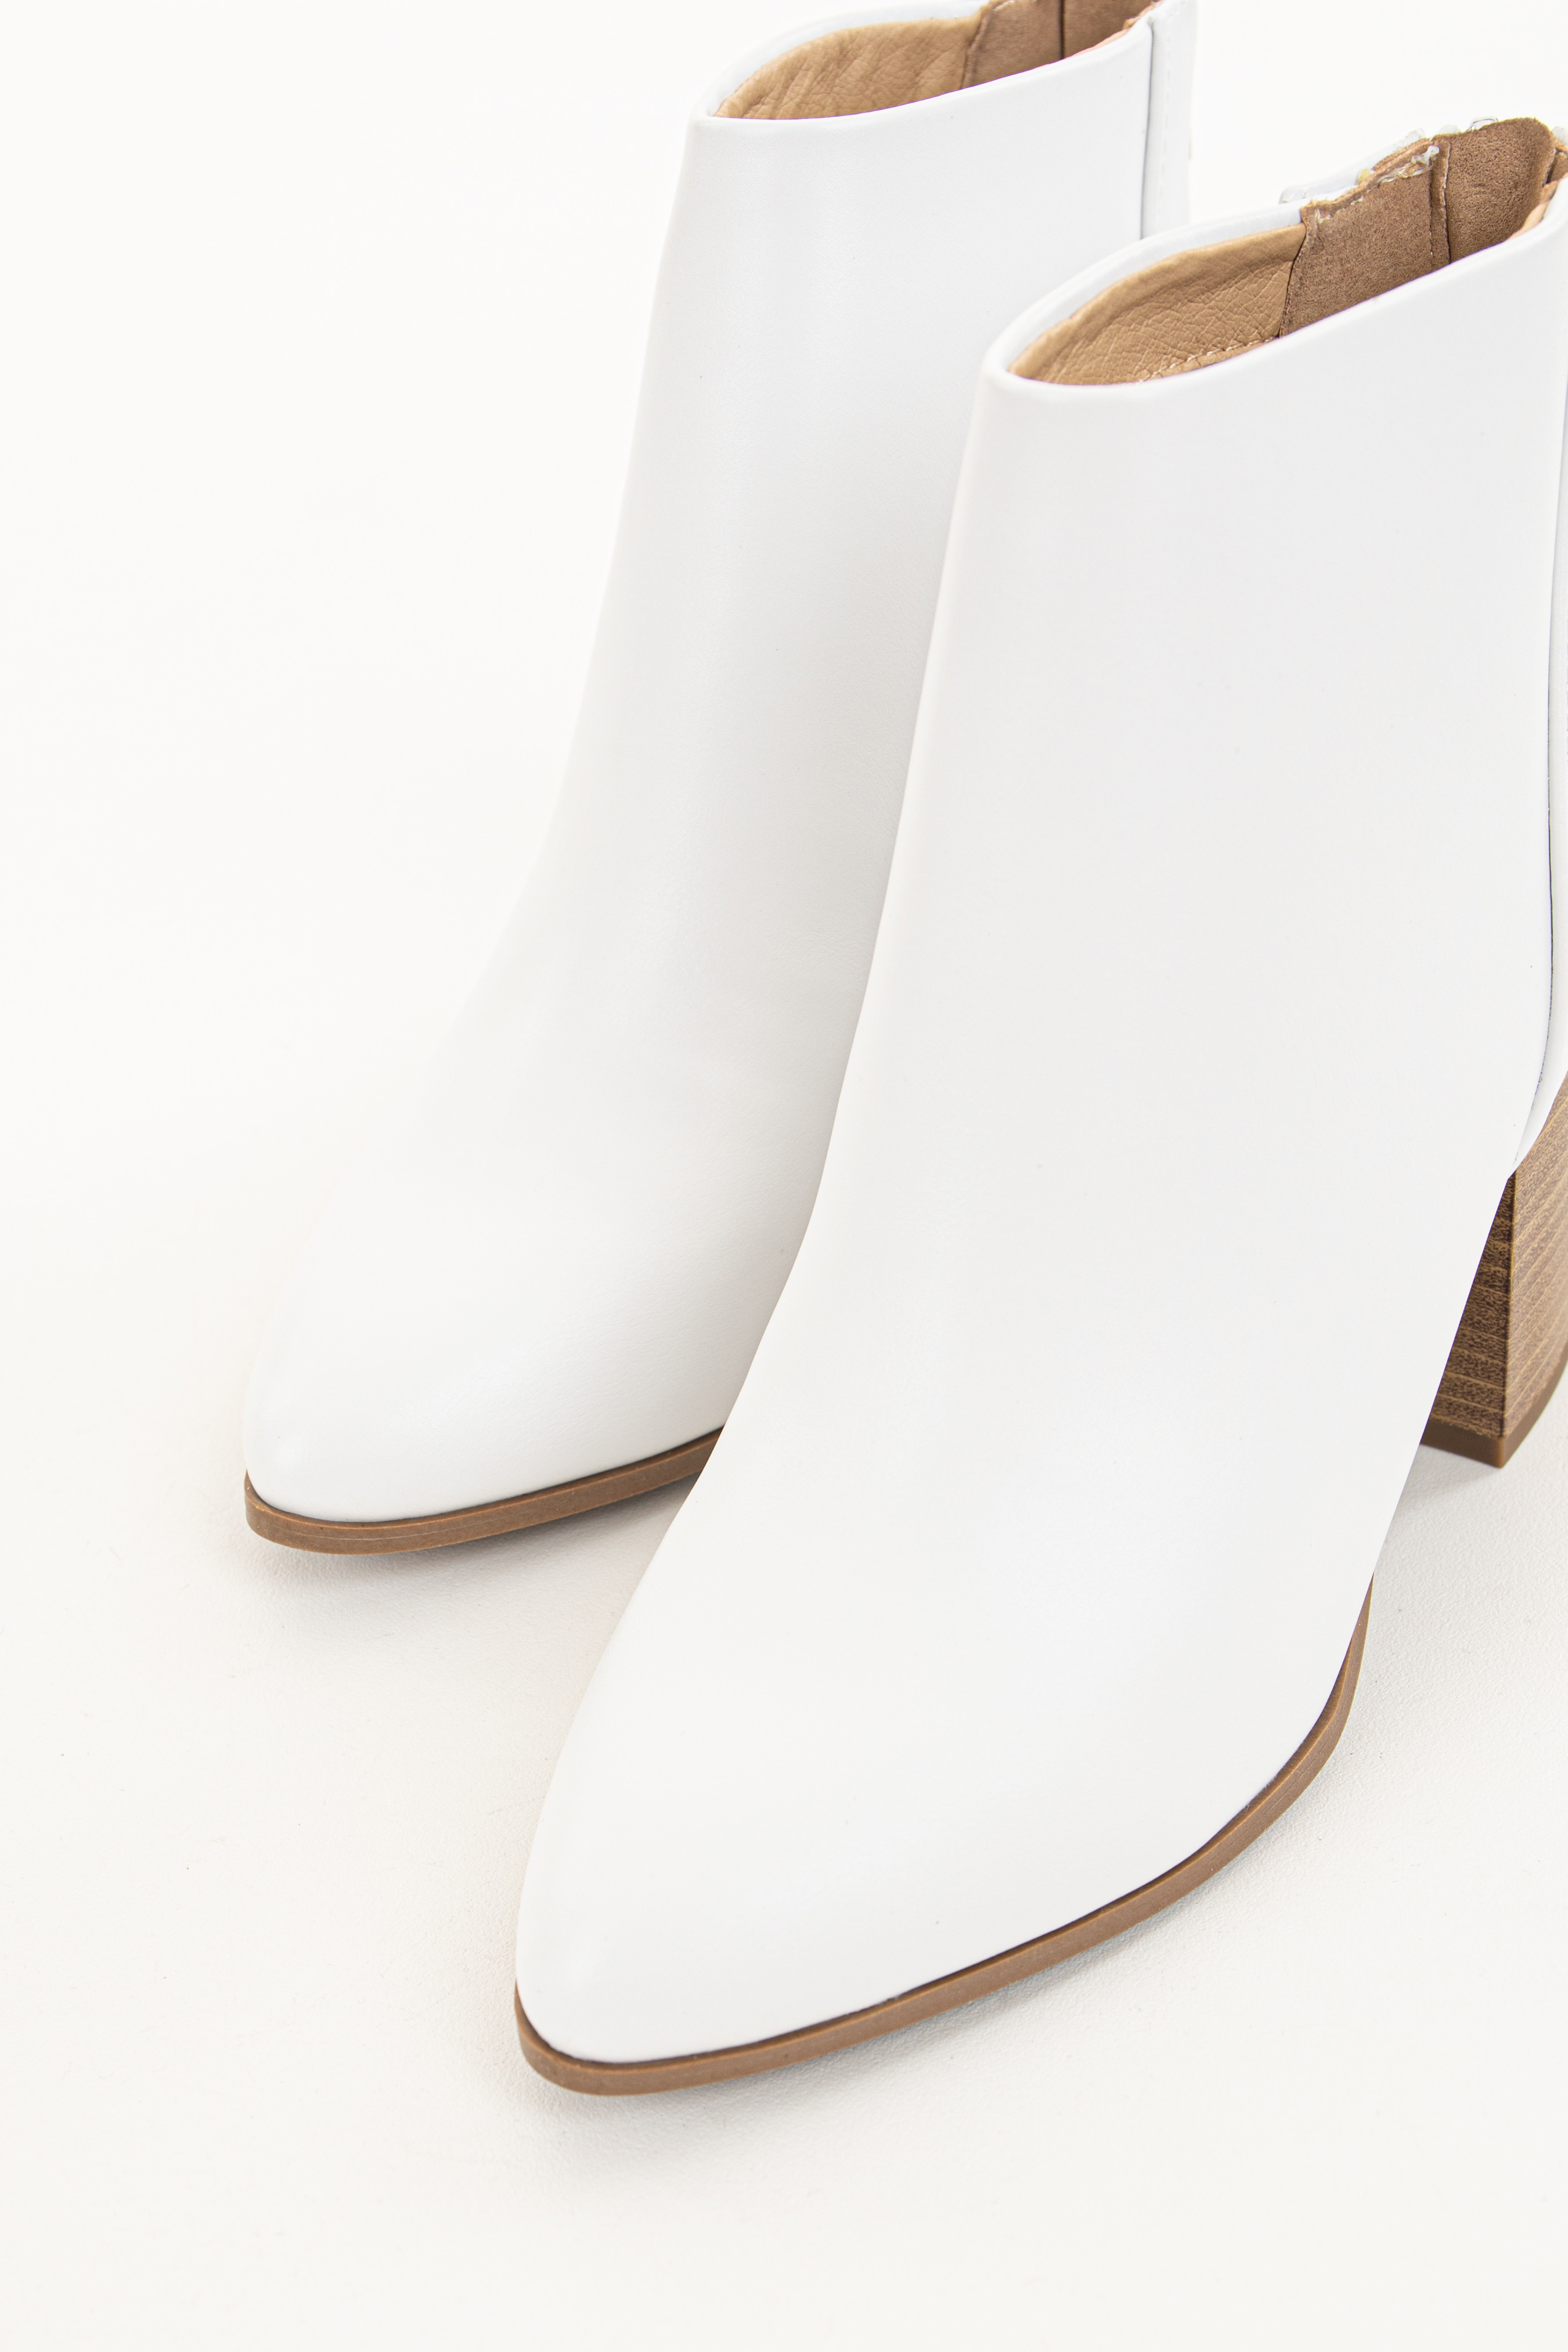 Pearl Faux Leather Pointed Toe Chunky High Heel Booties